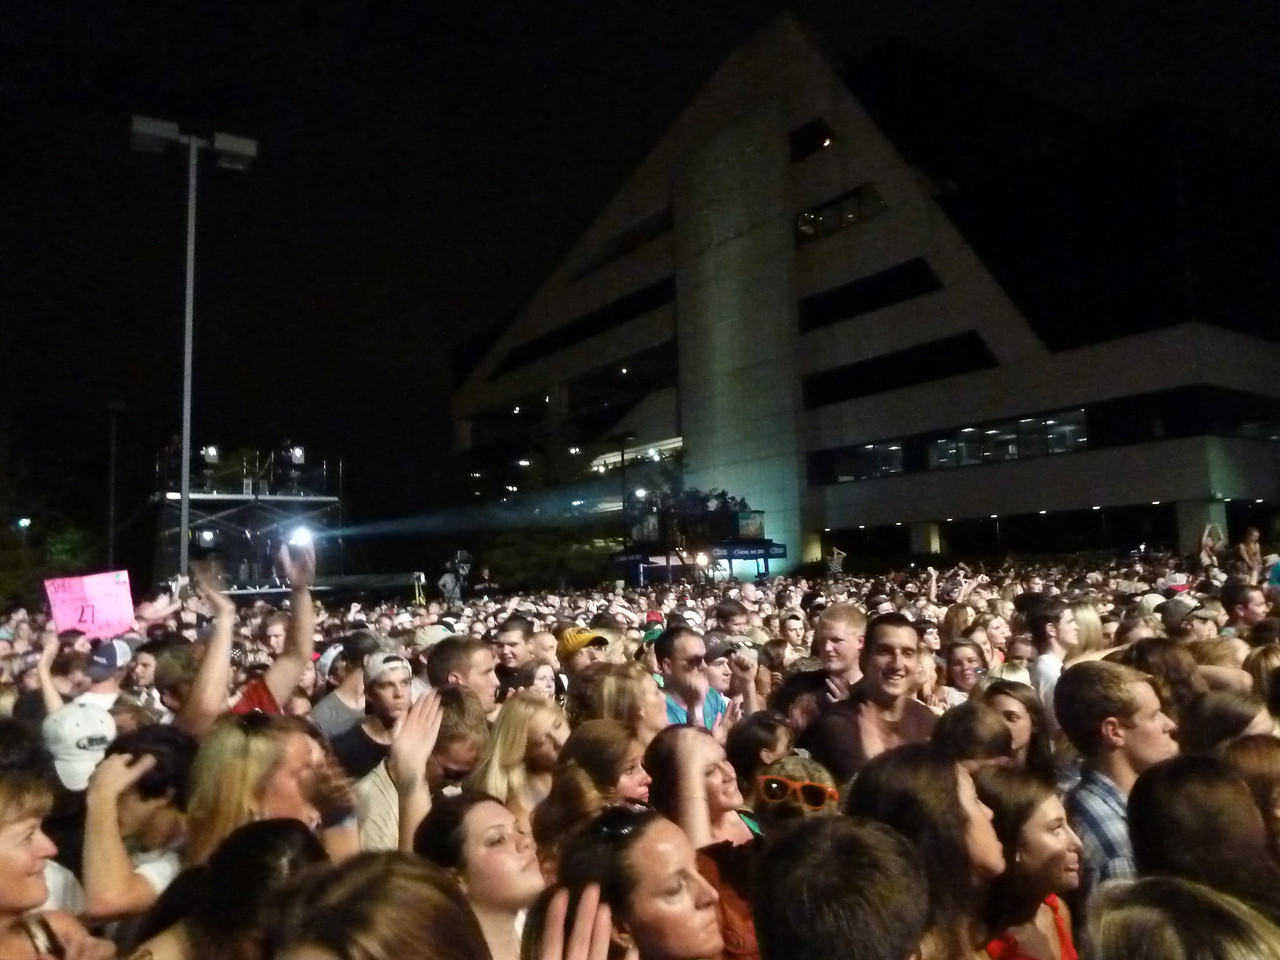 10,000+ fans showed up at the BMI Back Lot to see Jake....